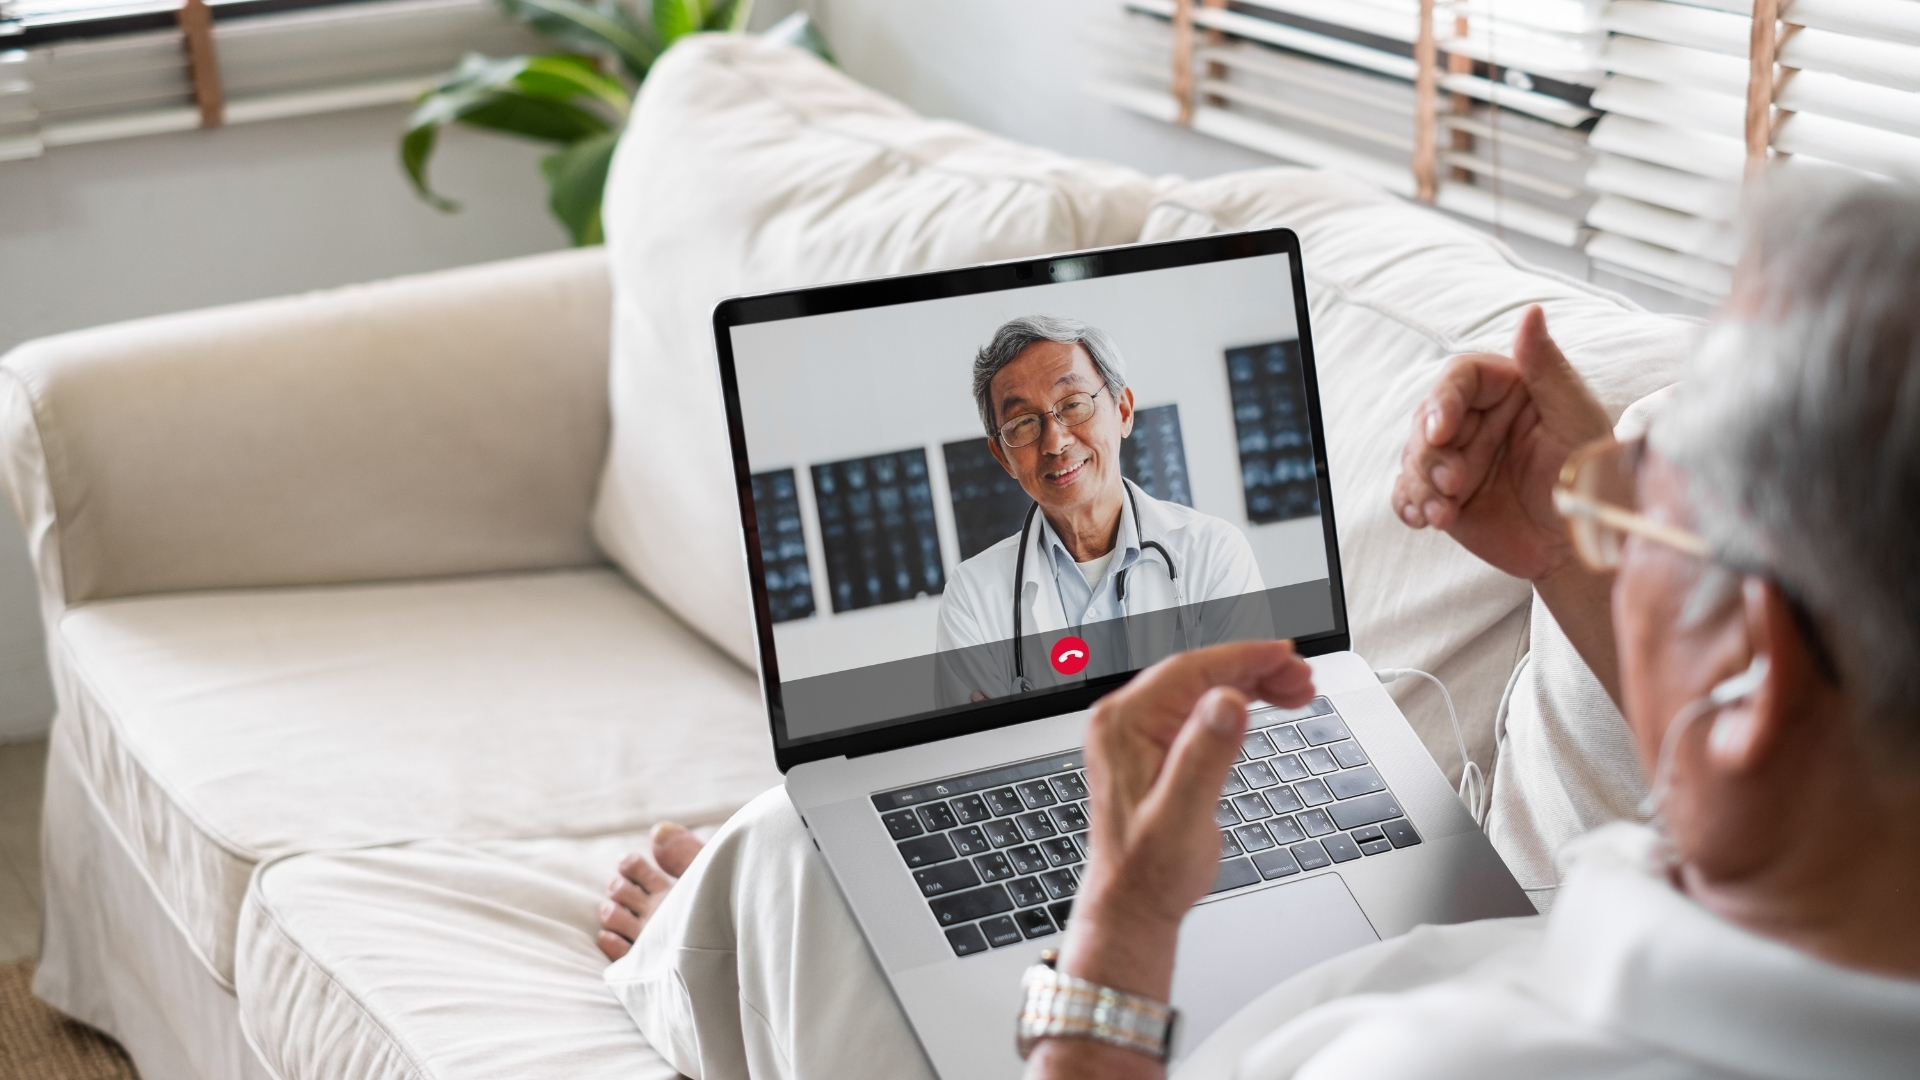 title image - How the rise of Telehealth is reshaping the way the medical industry does business